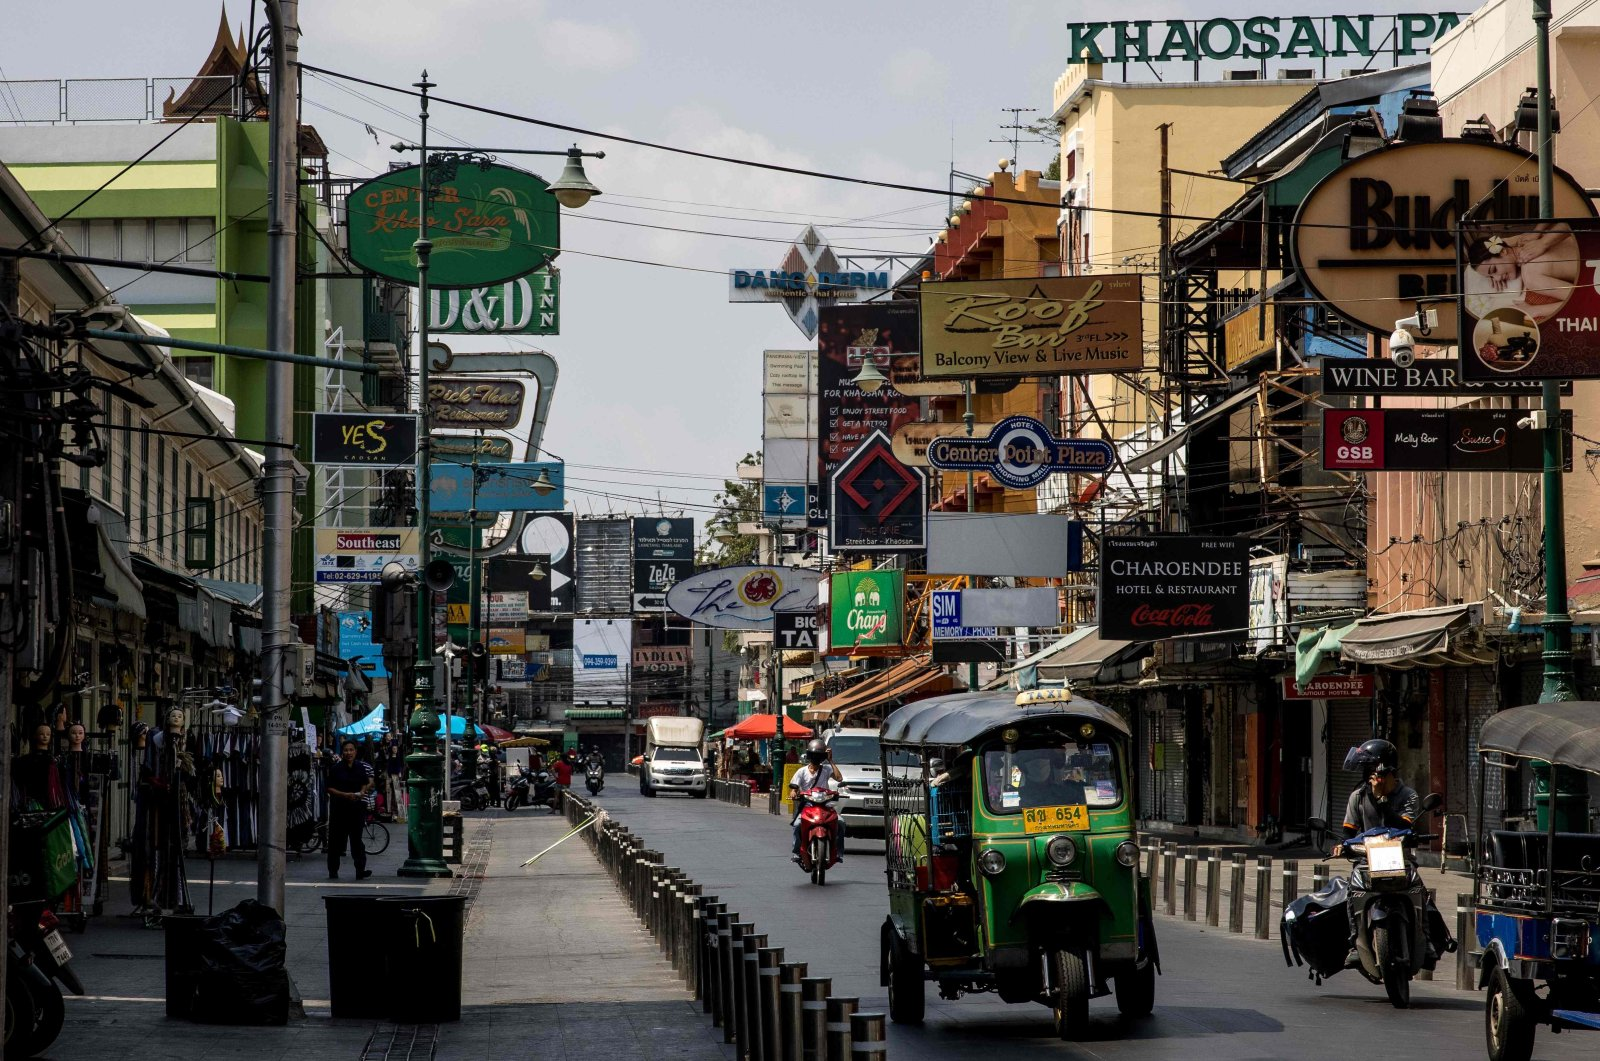 A tuk-tuk drives down Khao San Road, a once-popular tourist strip in Bangkok, Thailand, Feb. 15, 2021, as the country records it worst economic performance in more than two decades. (AFP Photo)